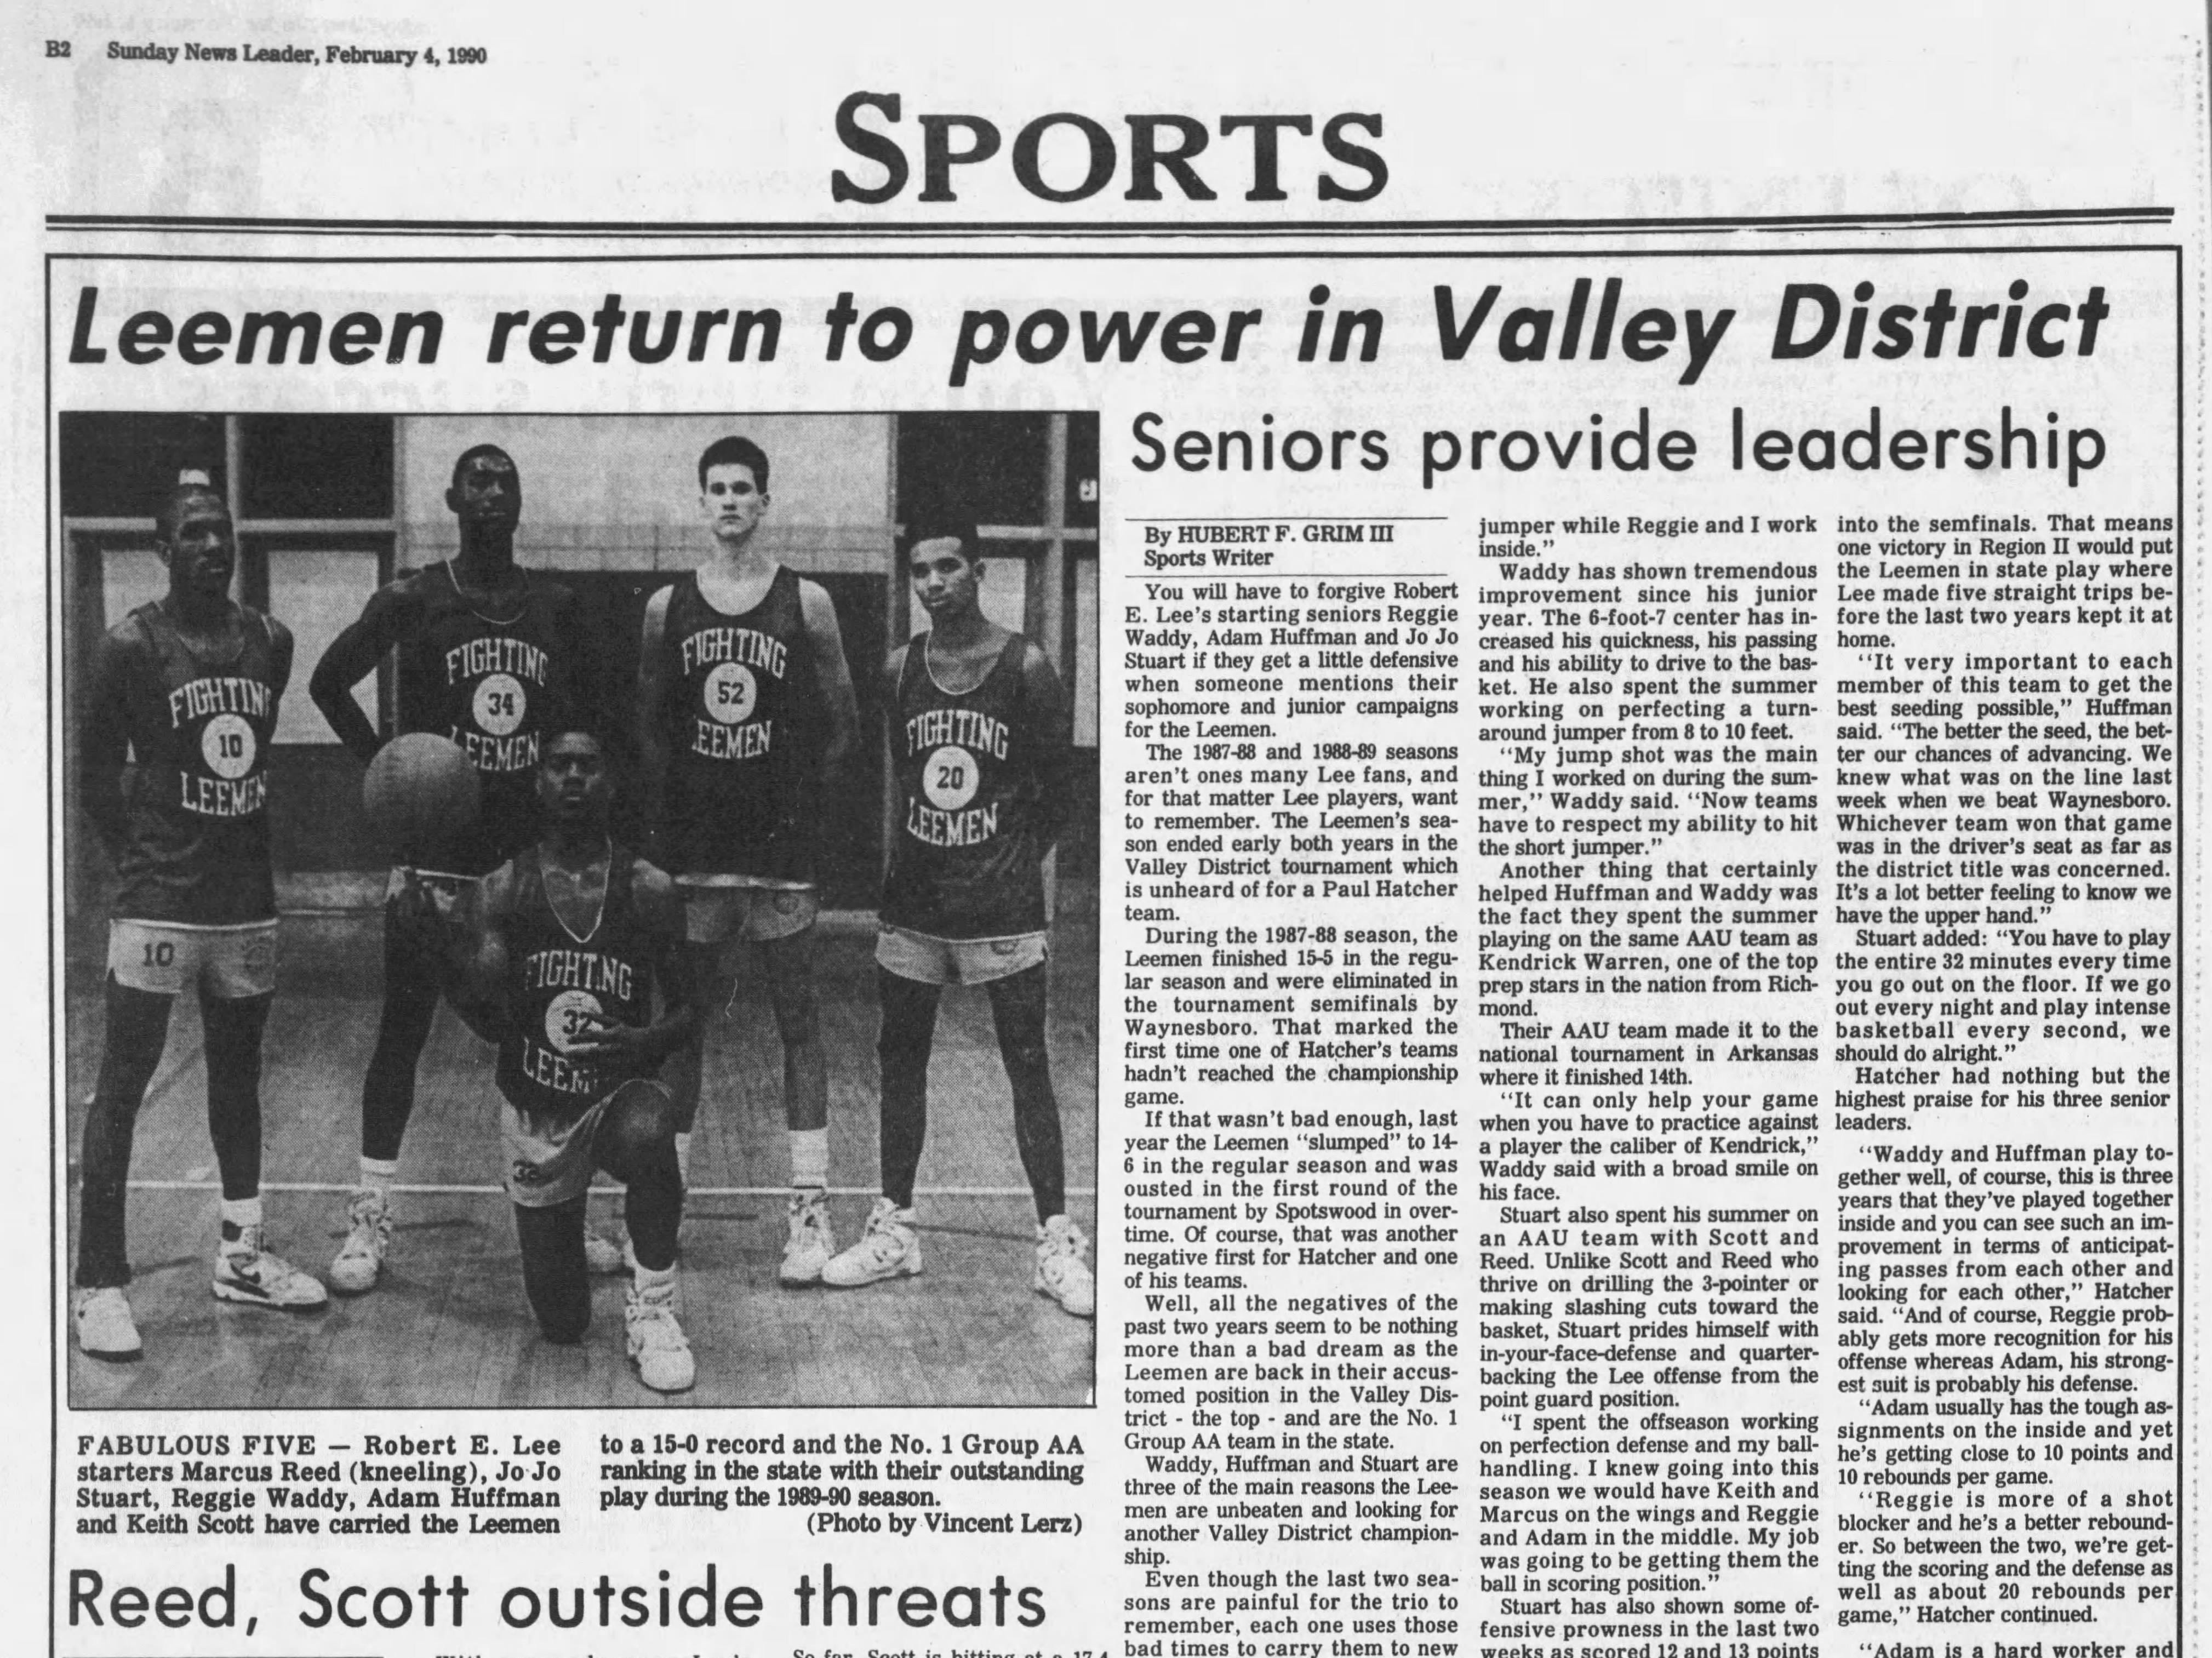 Keith Scott was part of the powerful 1989-90 Lee High basketball team, previewed here in a story in The News Leader from February 1990.